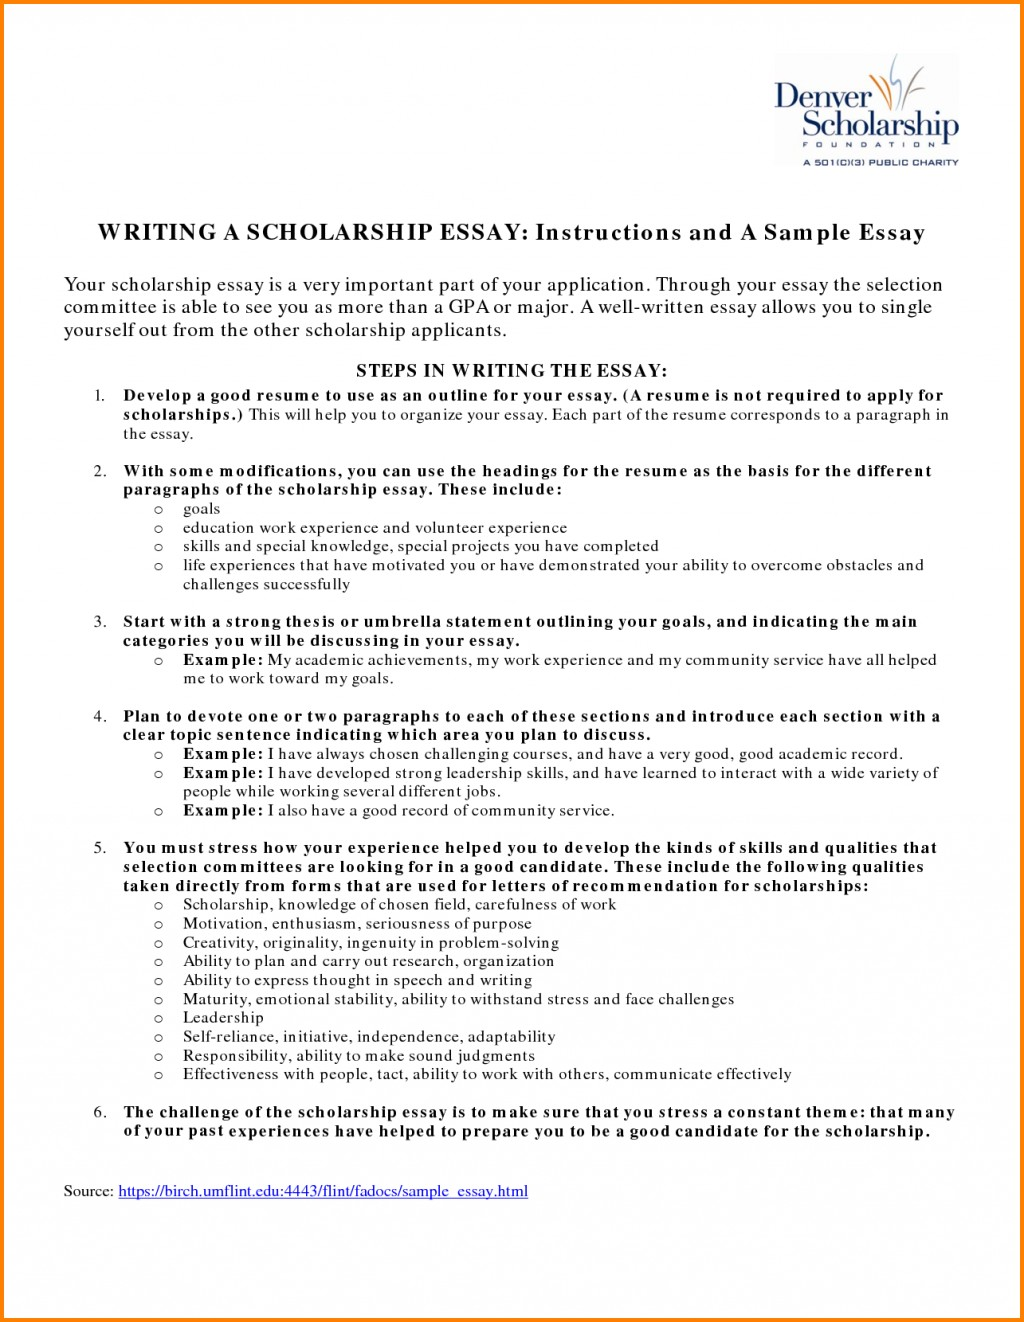 009 Essay Example Fair Resume Examples For Scholarships In Scholarship Sample Of Awful Essays Nursing Why I Deserve High School Seniors Large